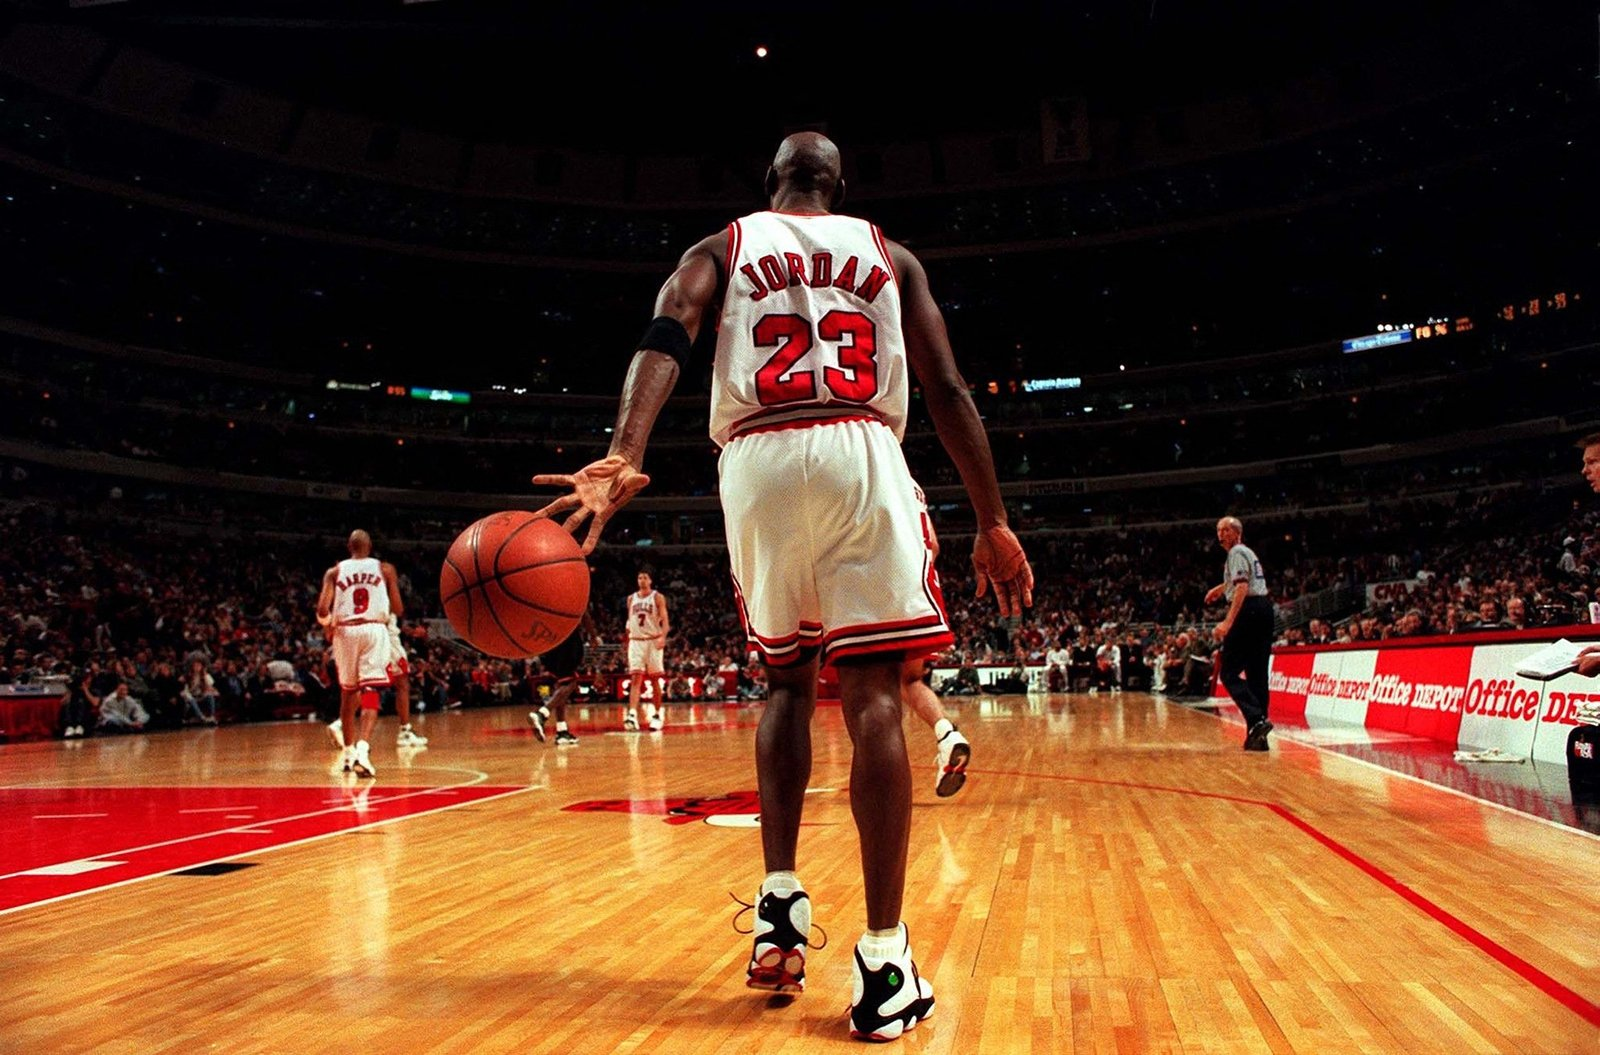 Michael Jordan heads up court during a game at the United Center in 1997. (Patrick D. Witty/Chicago Tribune/Reuters Photo)